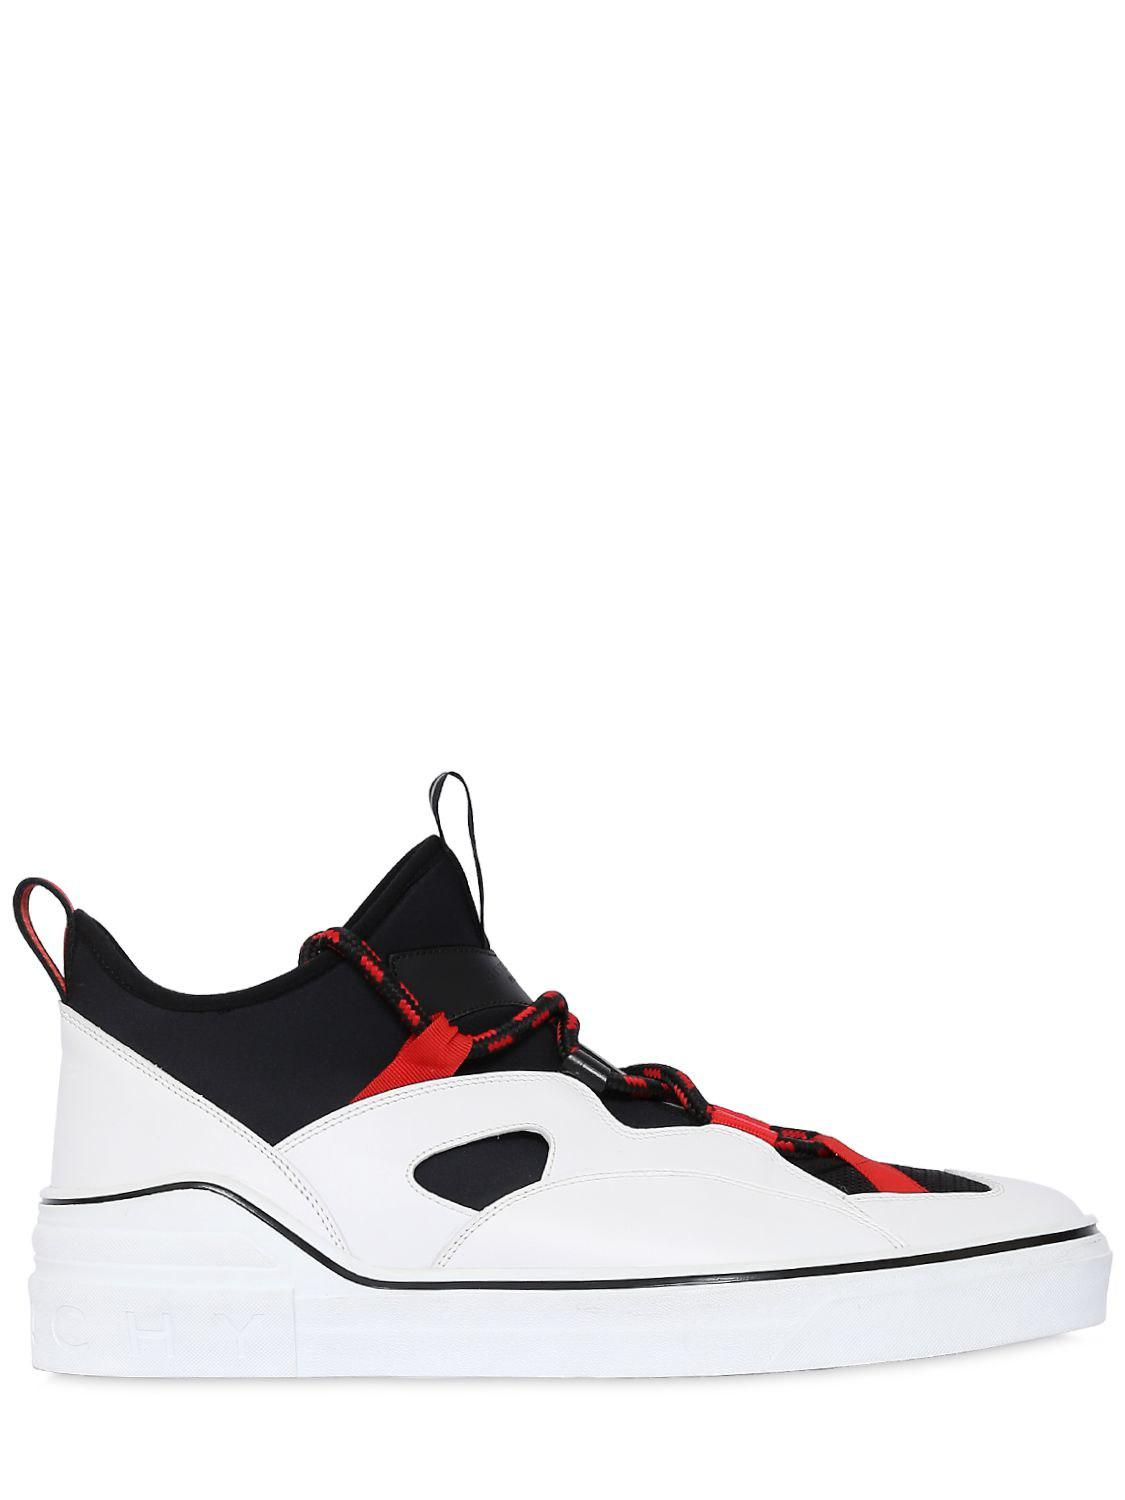 GivenchyGEORGE V NEOPRENE & LEATHER SNEAKERS